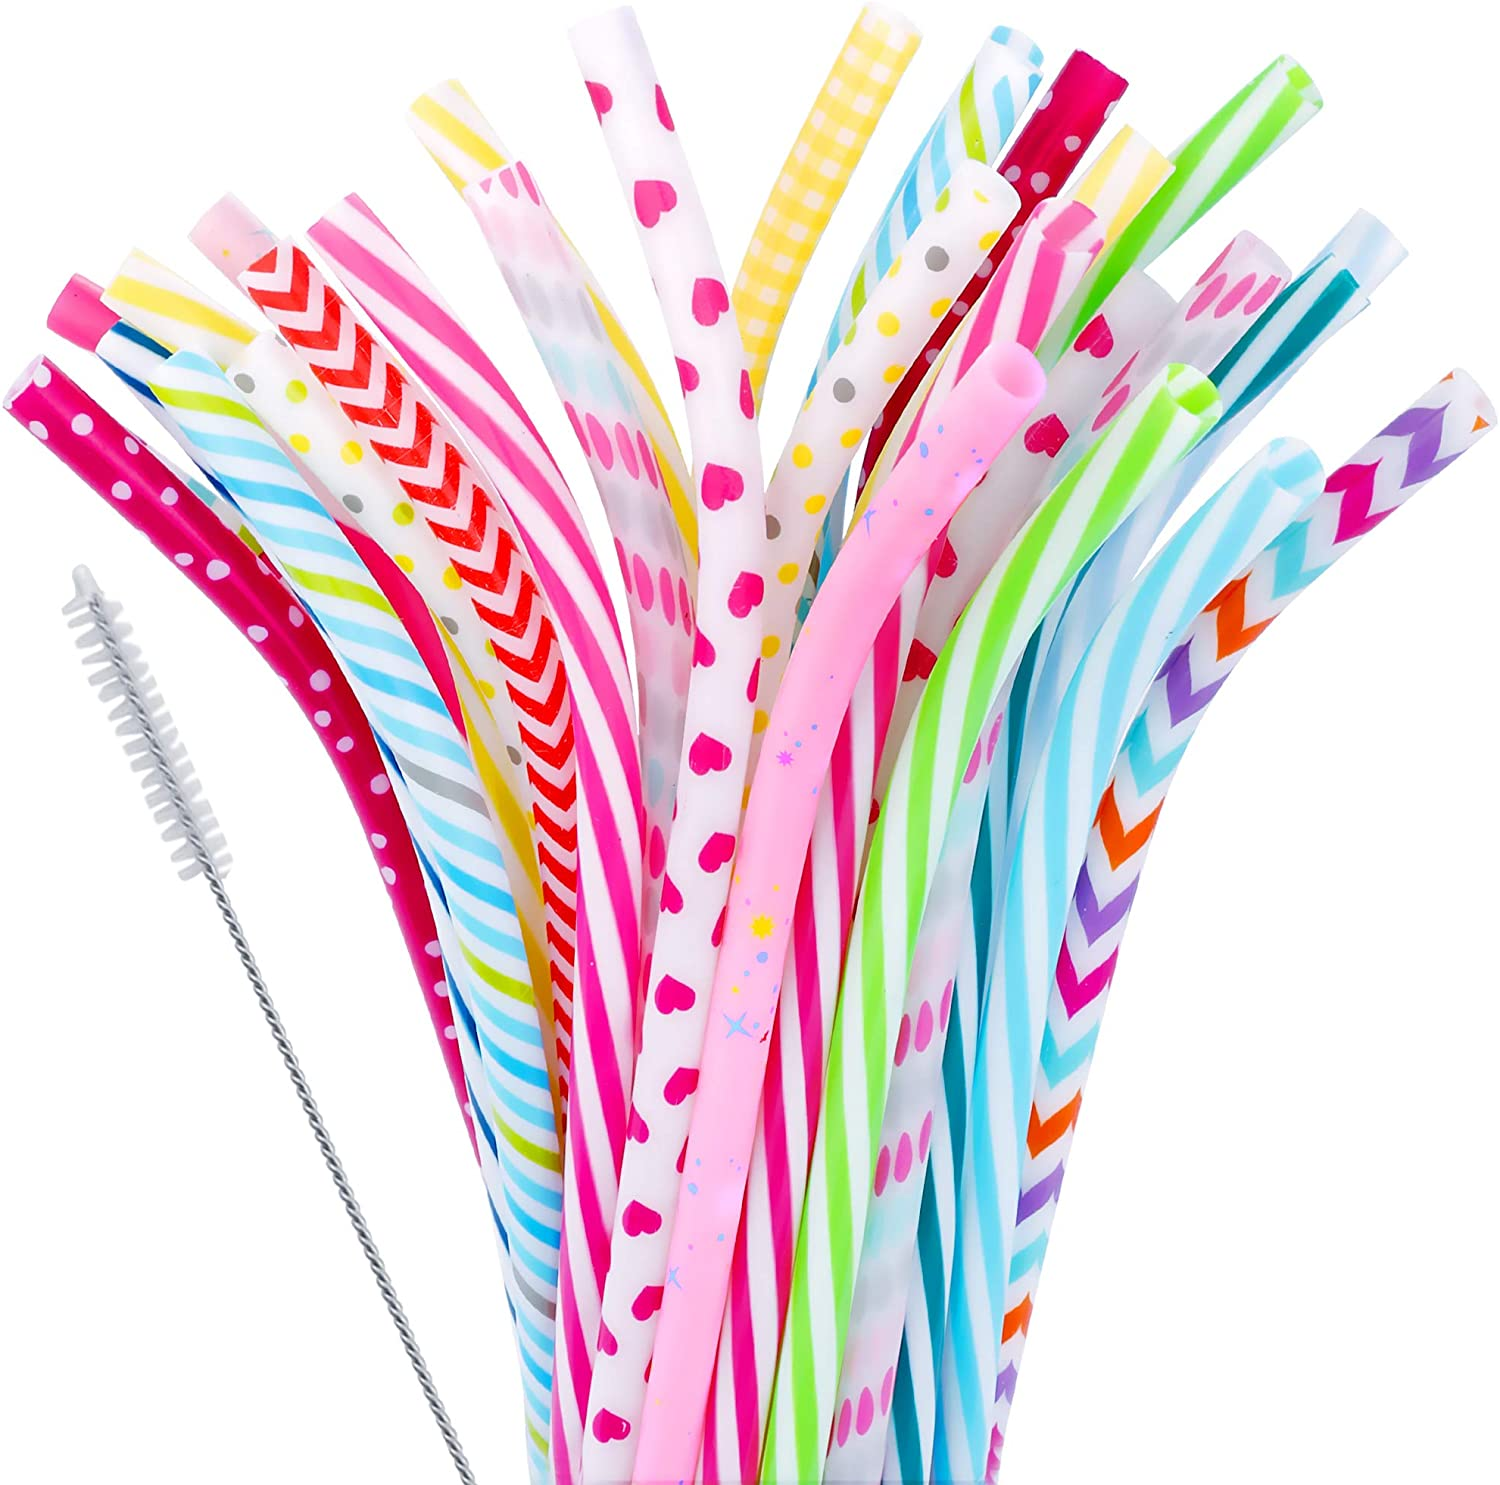 30 Pieces Reusable Bent Plastic Straws,BPA-Free,9